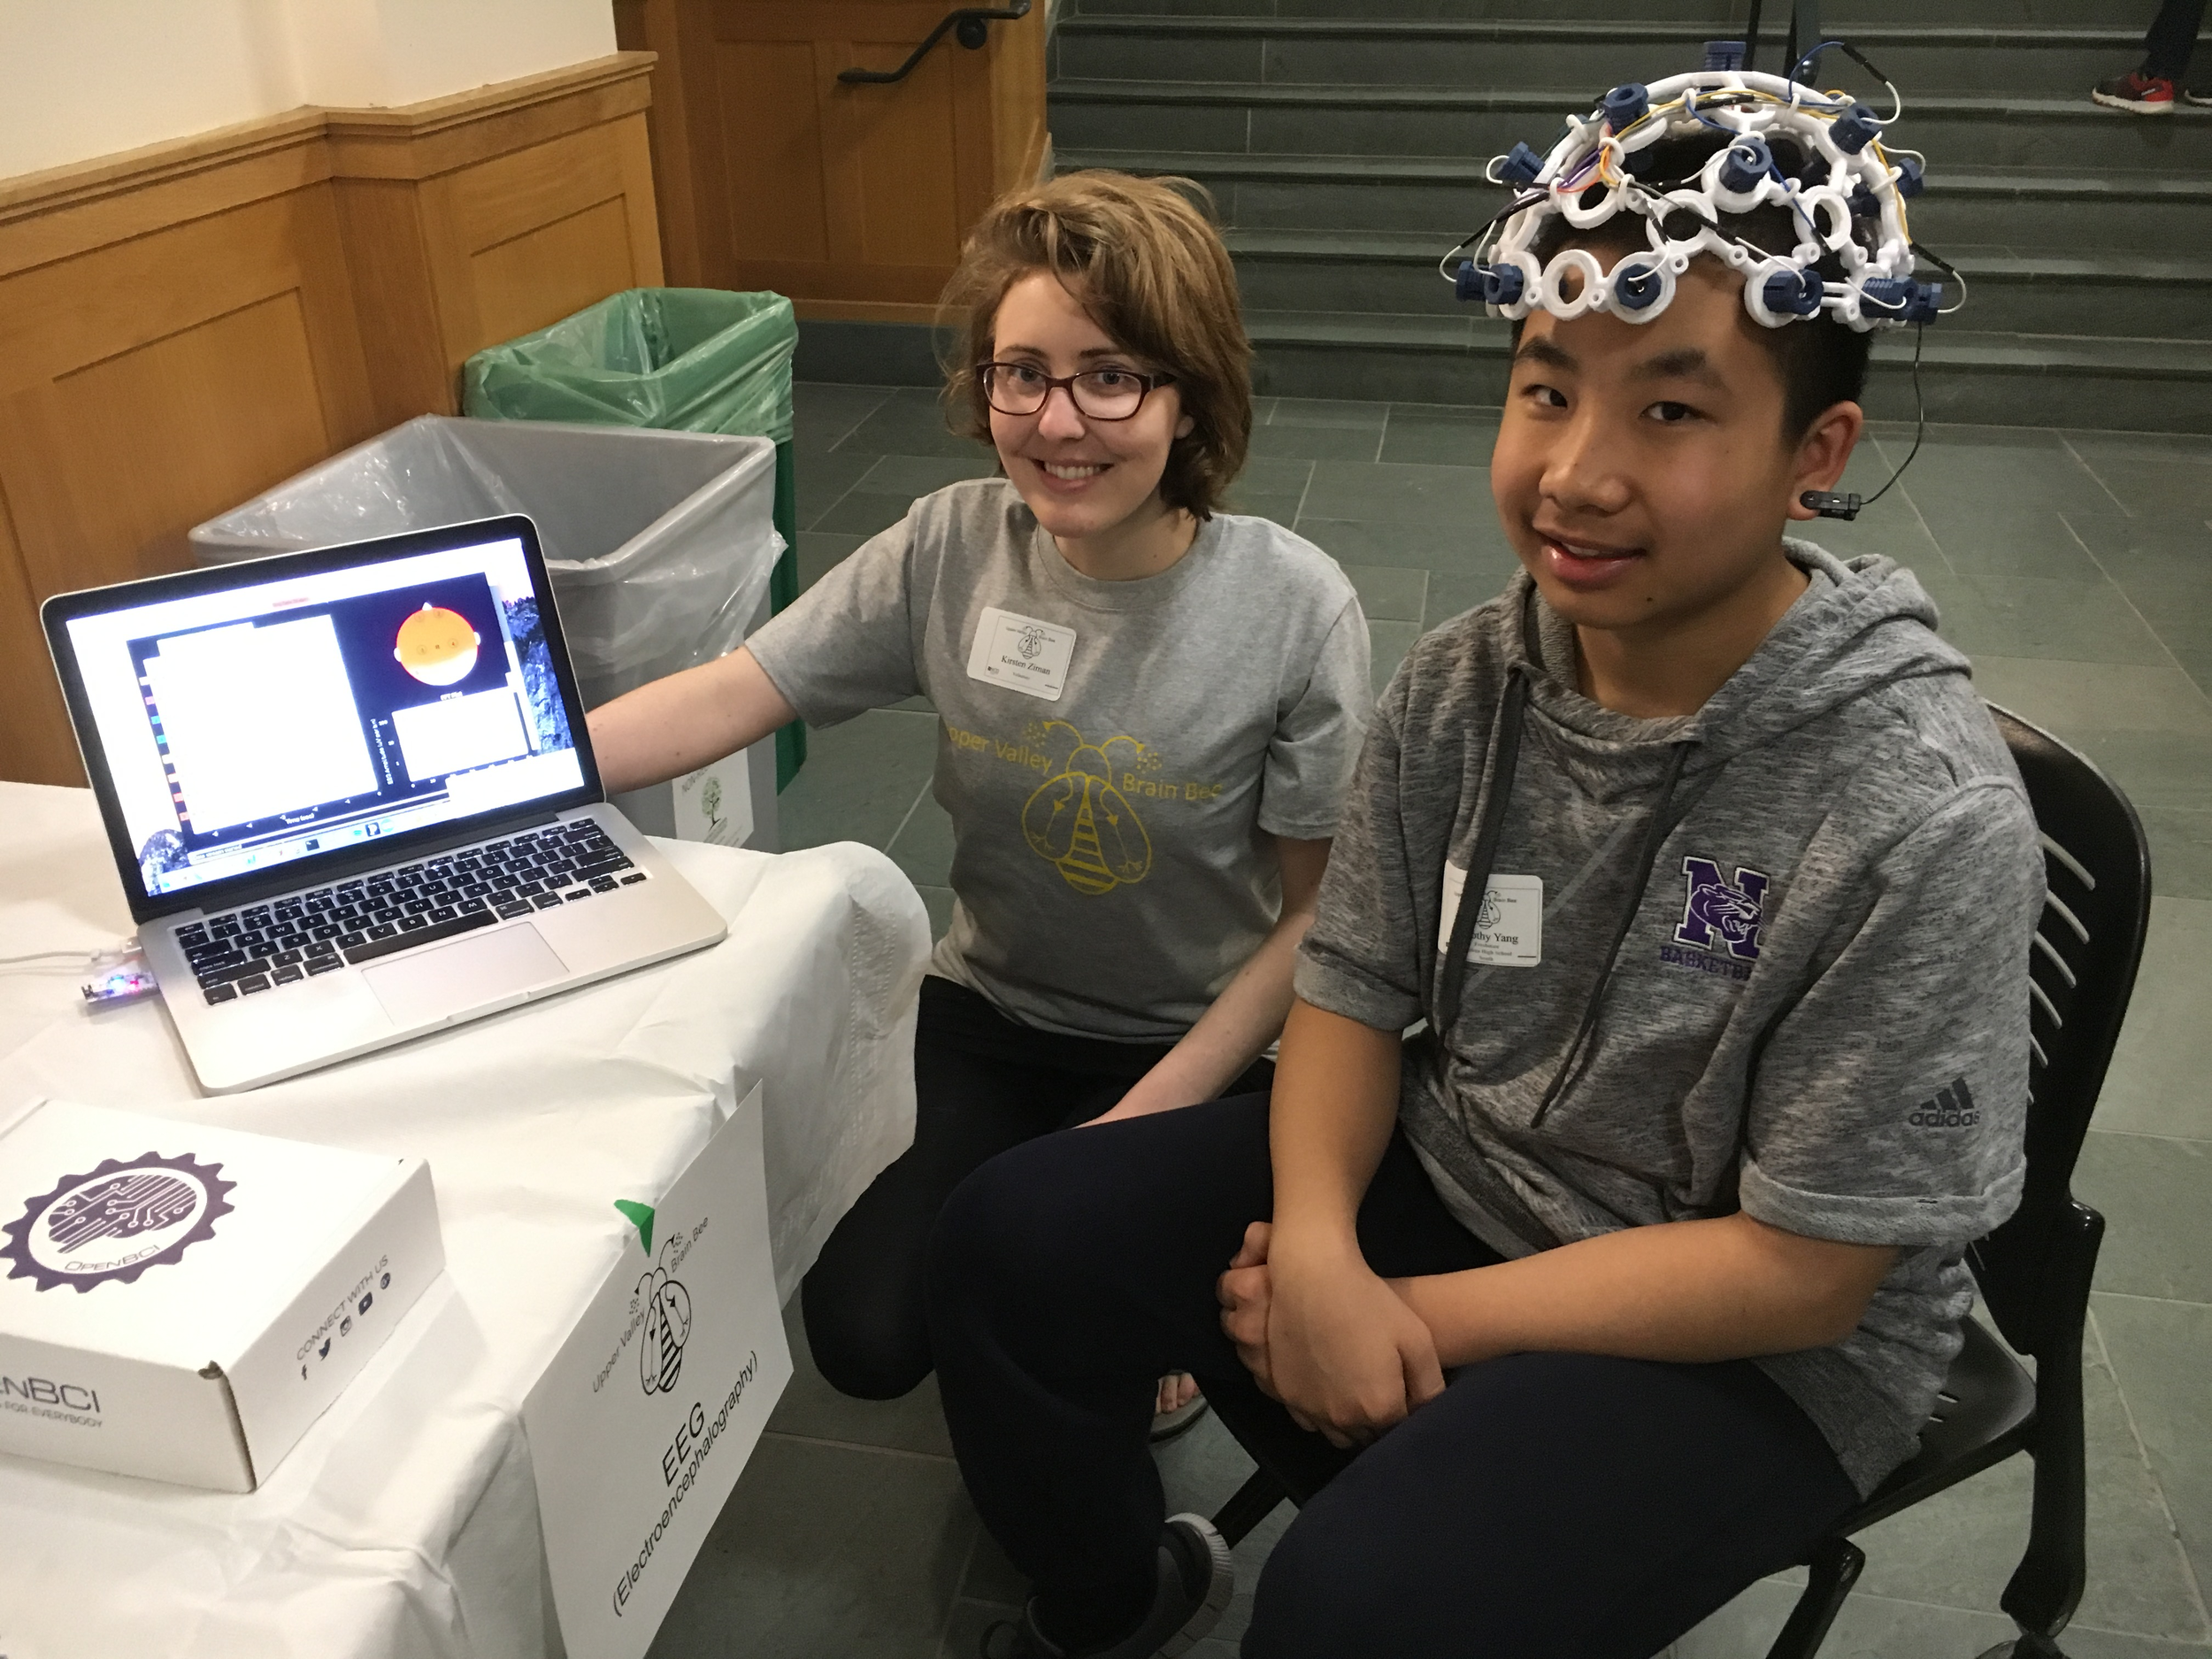 PBS Graduate Student and EPSCoR Attention Consortium Member, Kirsten Ziman, TEACHING the public about EEG recordings using a  3D printed headset during the Brain Bee on April 22nd, 2017 at Dartmouth College.